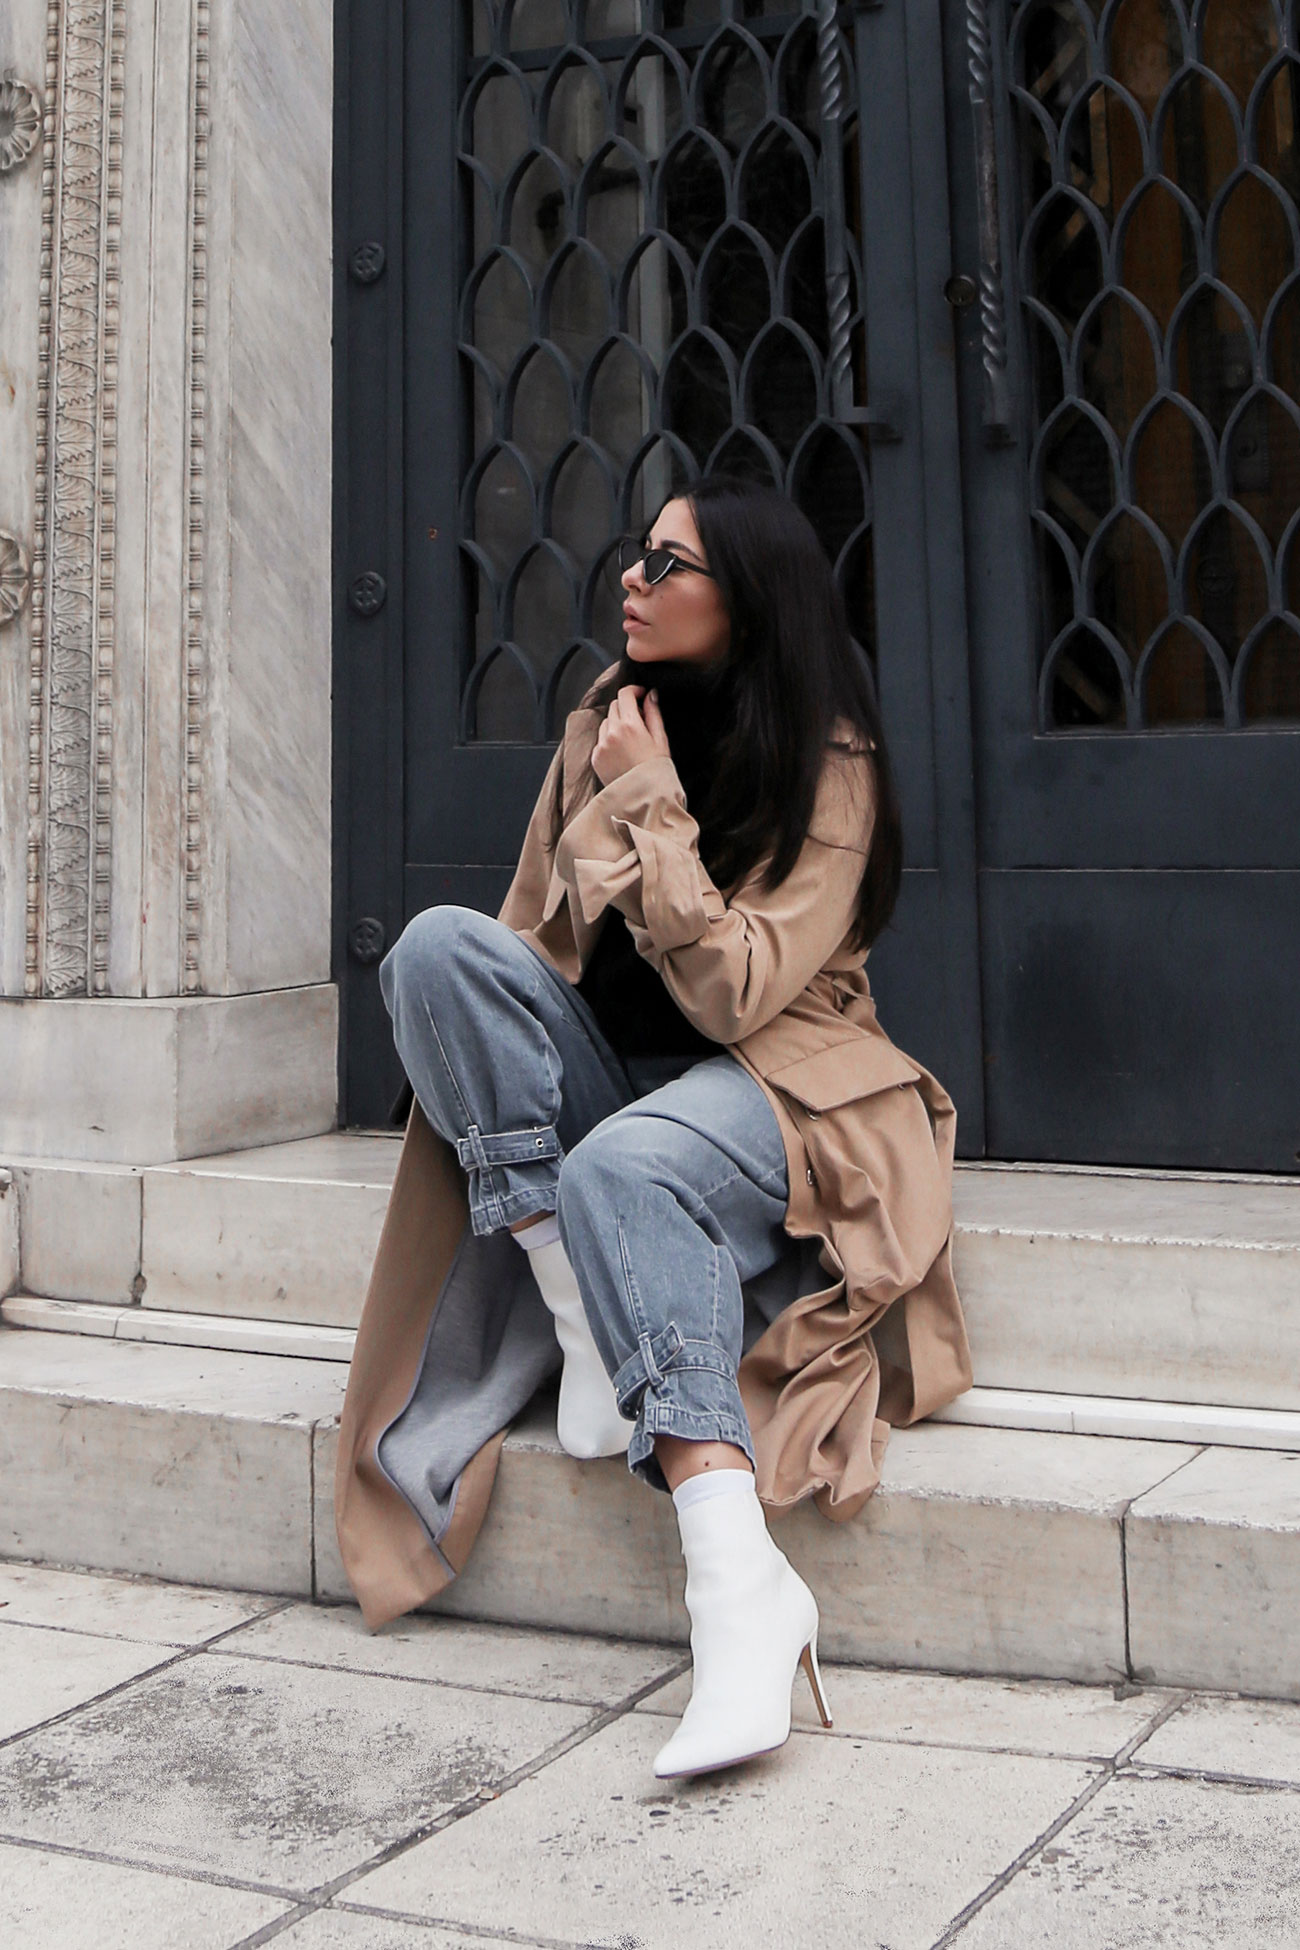 Stella Asteria wearing one of her beige trench coats with jeans and white ankle boots